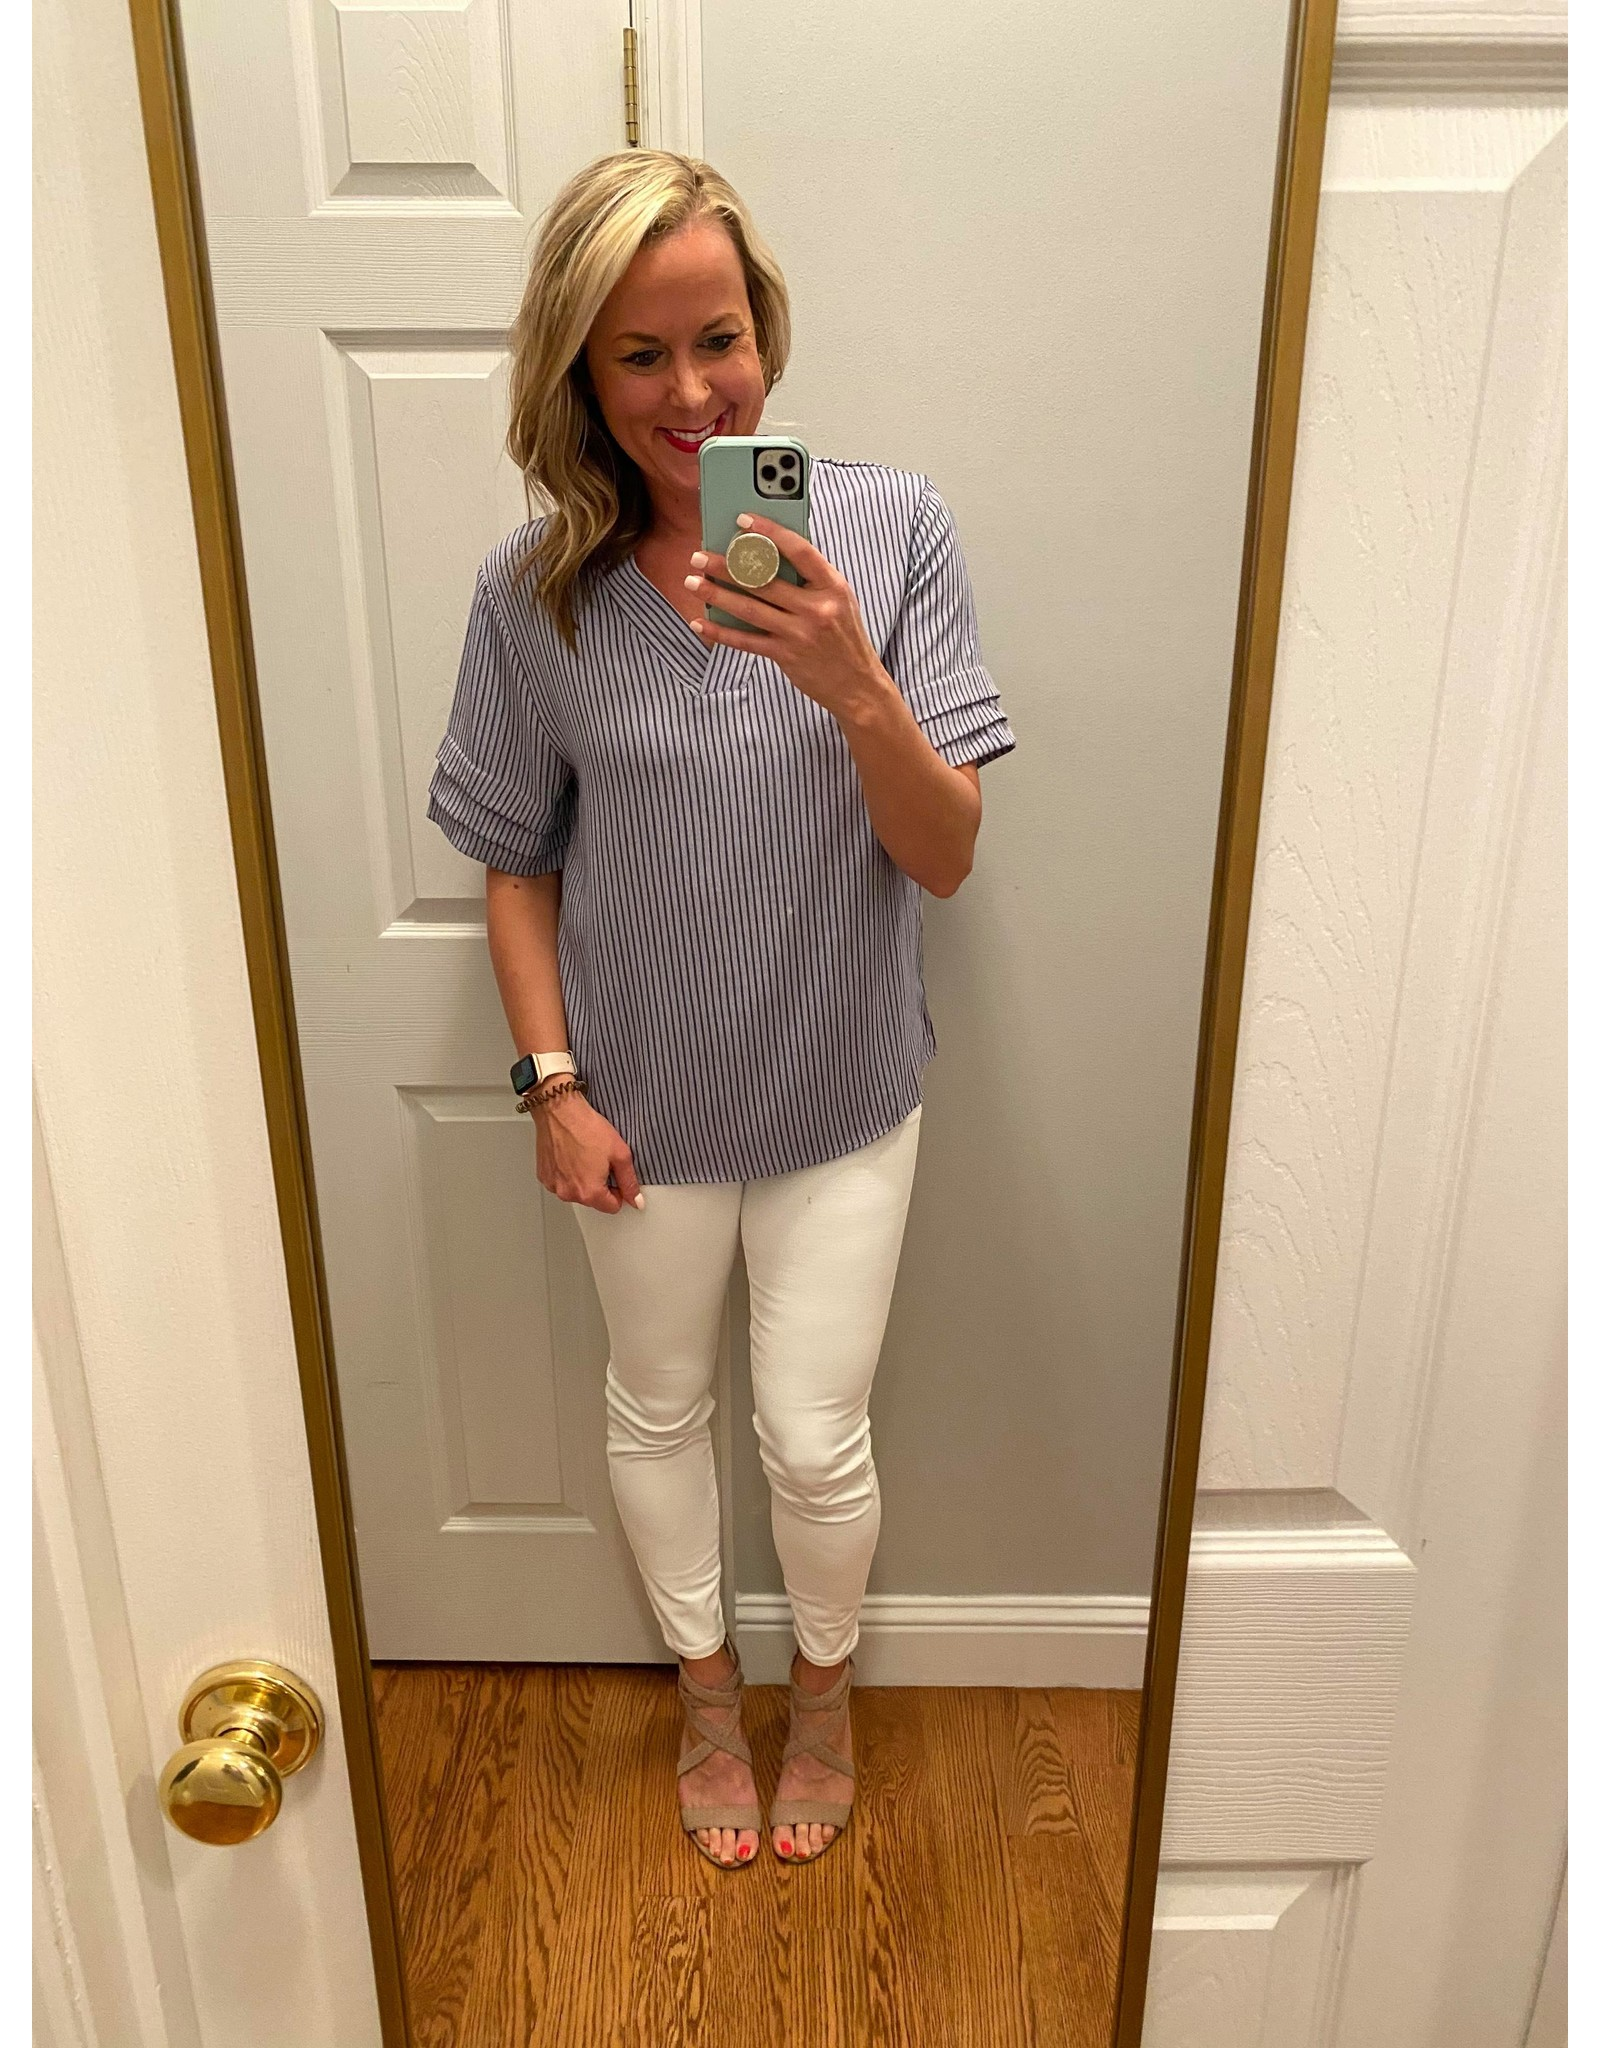 upmost V-neck tunic top striped with short sleeves